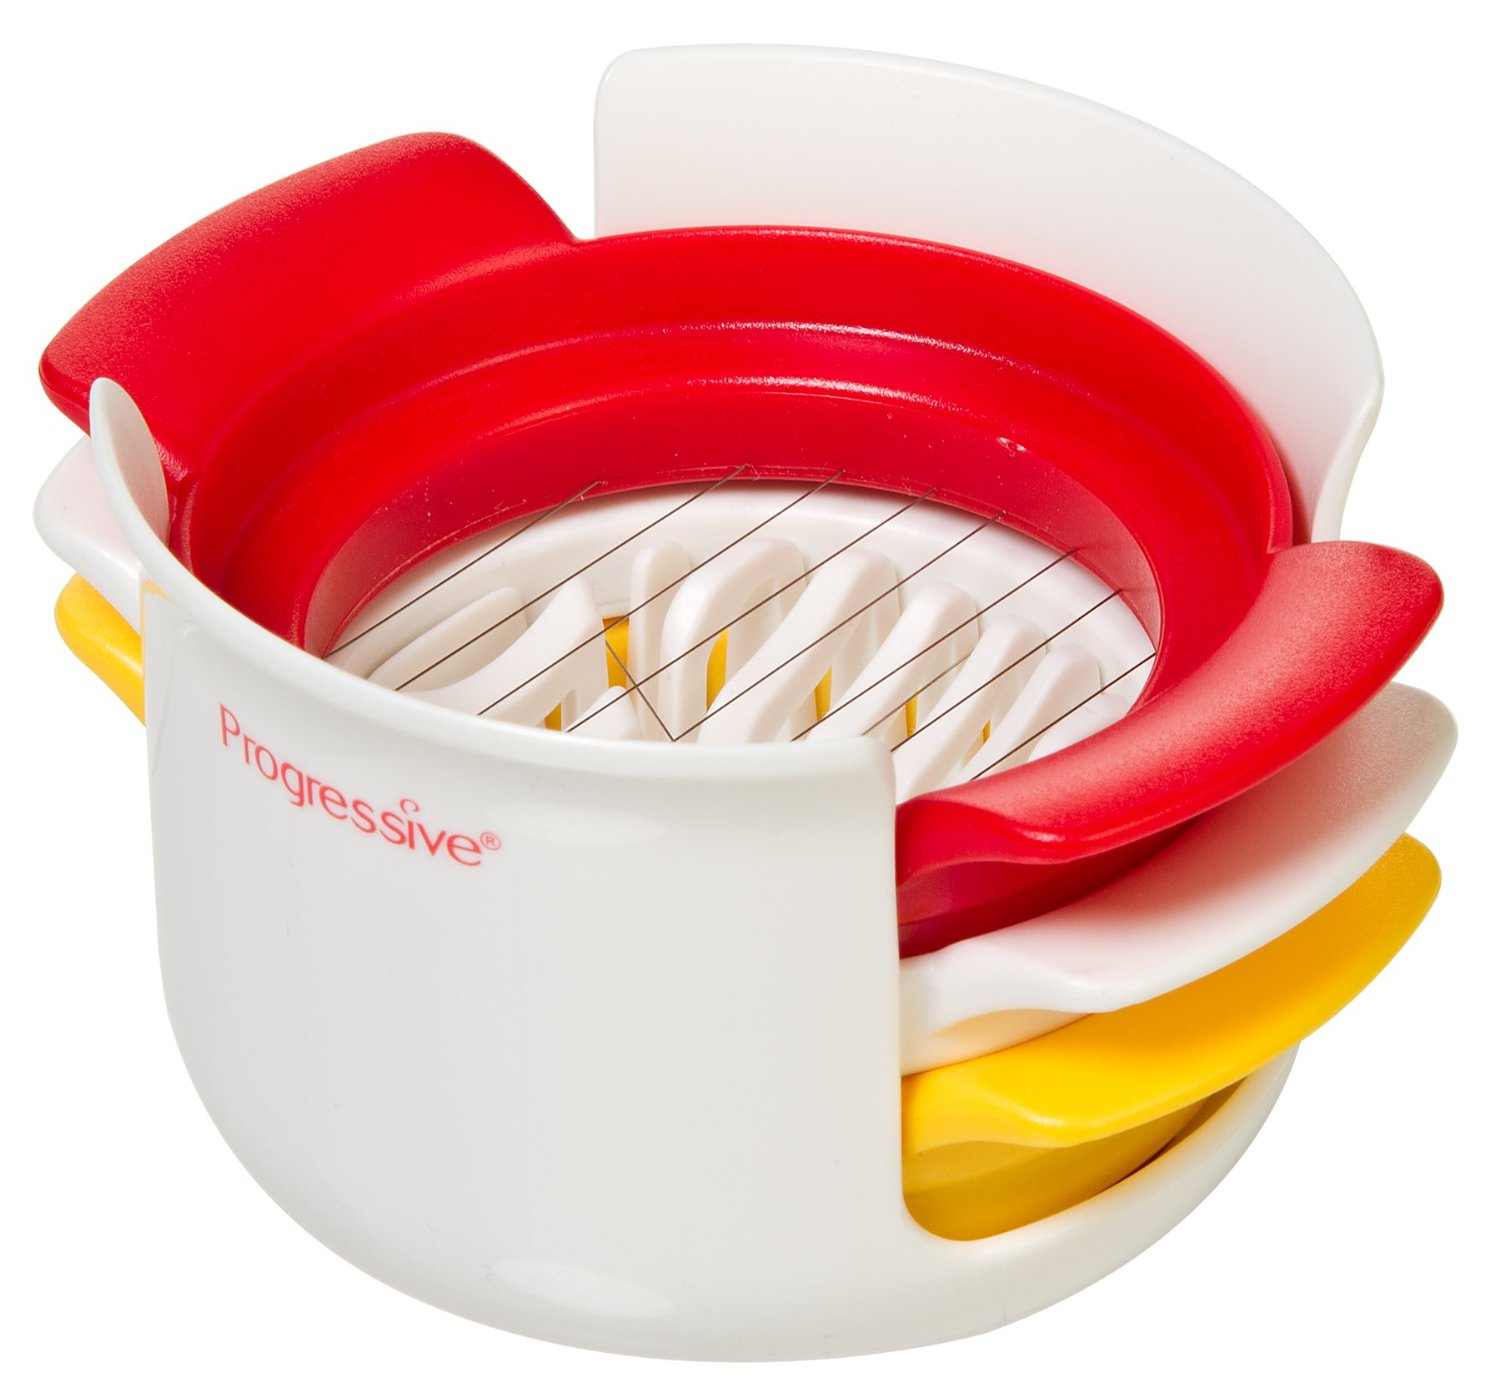 Prepworks By Progressive Compact Egg Slicer Slice, Wedge, & Half Eggs, Mushrooms